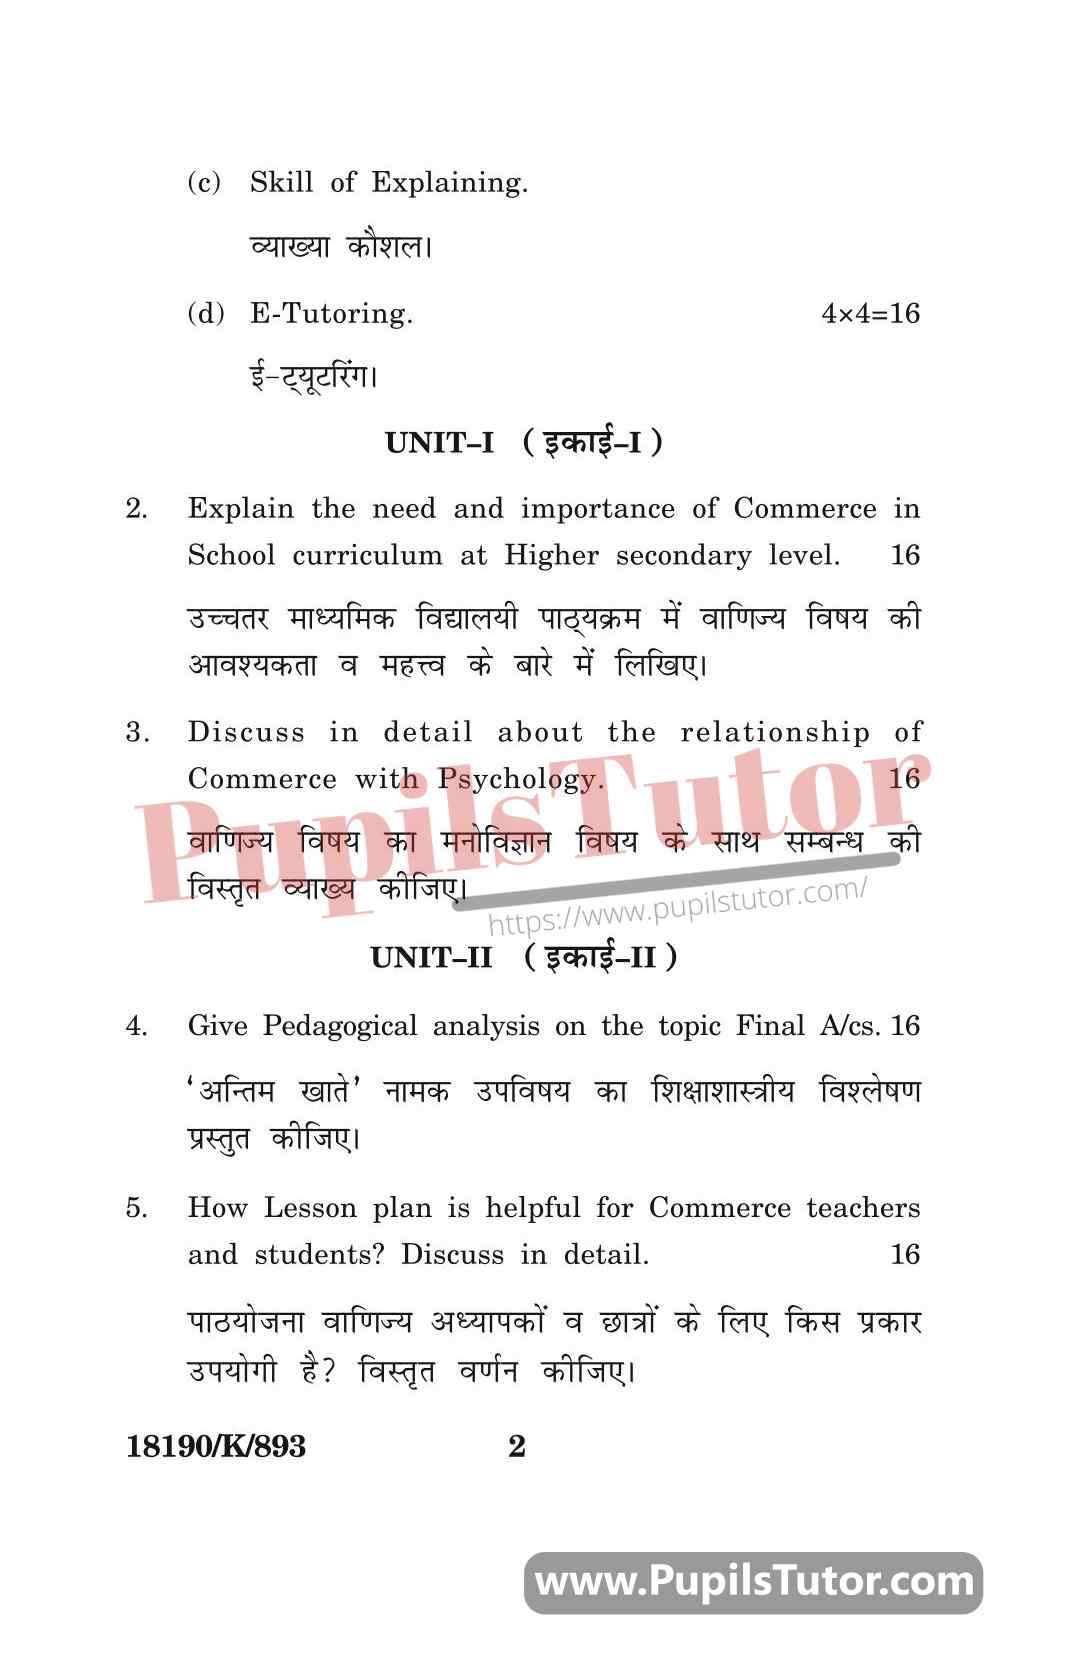 KUK (Kurukshetra University, Haryana) Pedagogy Of Commerce Question Paper 2020 For B.Ed 1st And 2nd Year And All The 4 Semesters In English And Hindi Medium Free Download PDF - Page 2 - www.pupilstutor.com